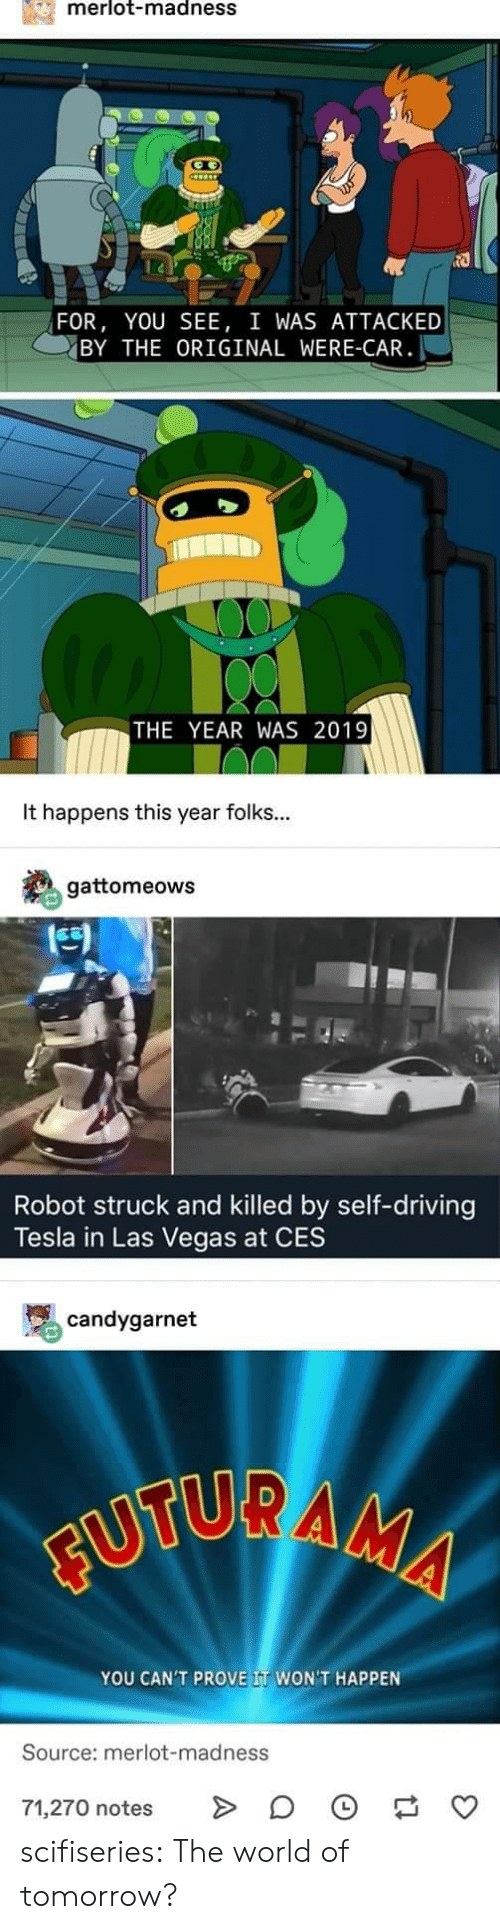 Las Vegas: merlot-madnesS  FOR, YOU SEE, I WAS ATTACKED  BY THE ORIGINAL WERE-CAR  THE YEAR WAS 2019  It happens this year folks...  gattomeows  凹  Robot struck and killed by self-driving  Tesla in Las Vegas at CES  骂candygarnet  YOU CAN'T PROVE IT WON'T HAPPEN  Source: merlot-madness  71,270 notes > 。 scifiseries:  The world of tomorrow?